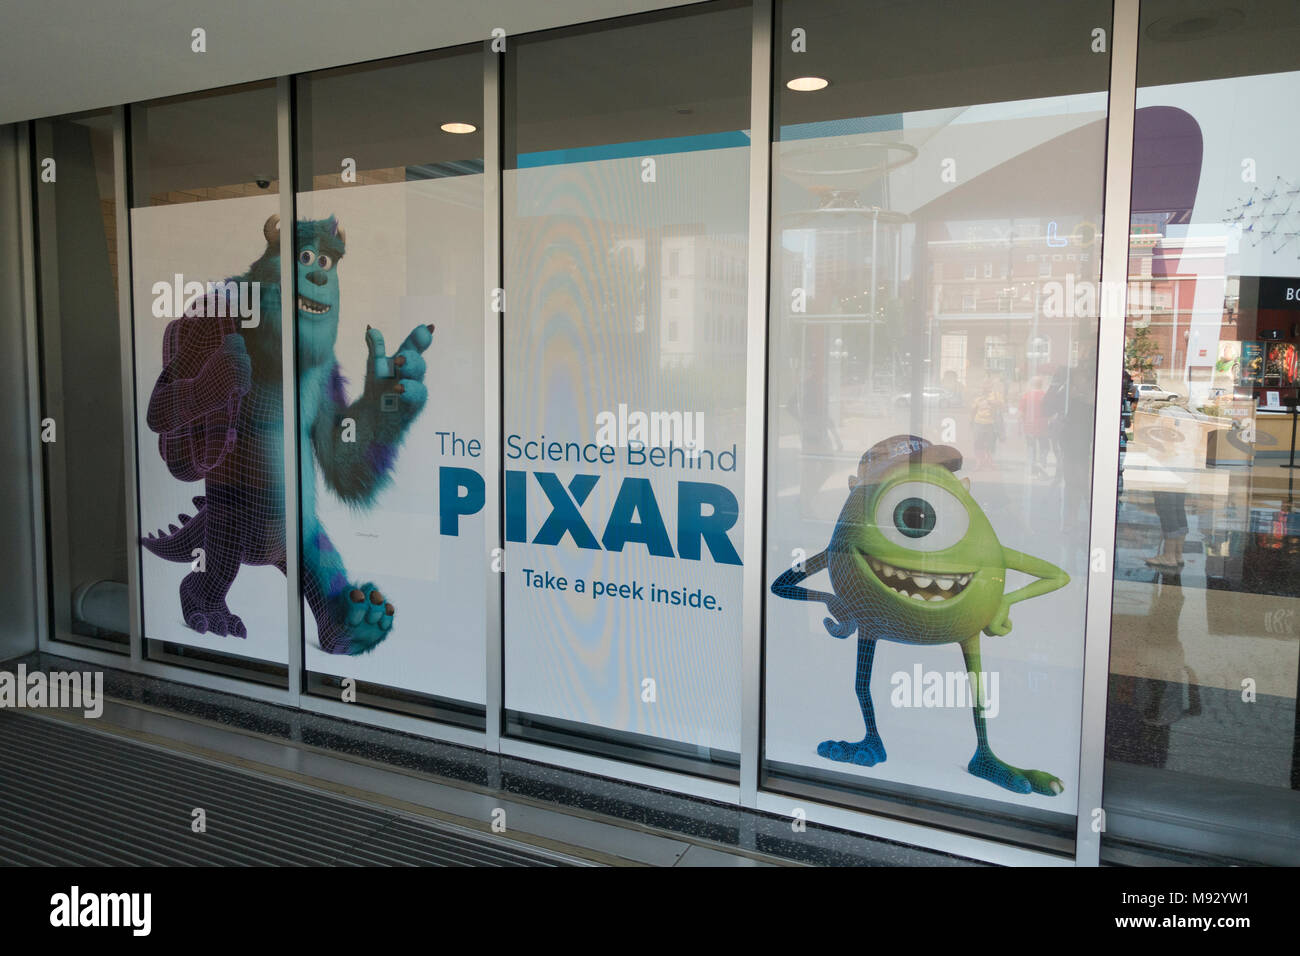 Monsters Inc Stock Photos & Monsters Inc Stock Images - Alamy